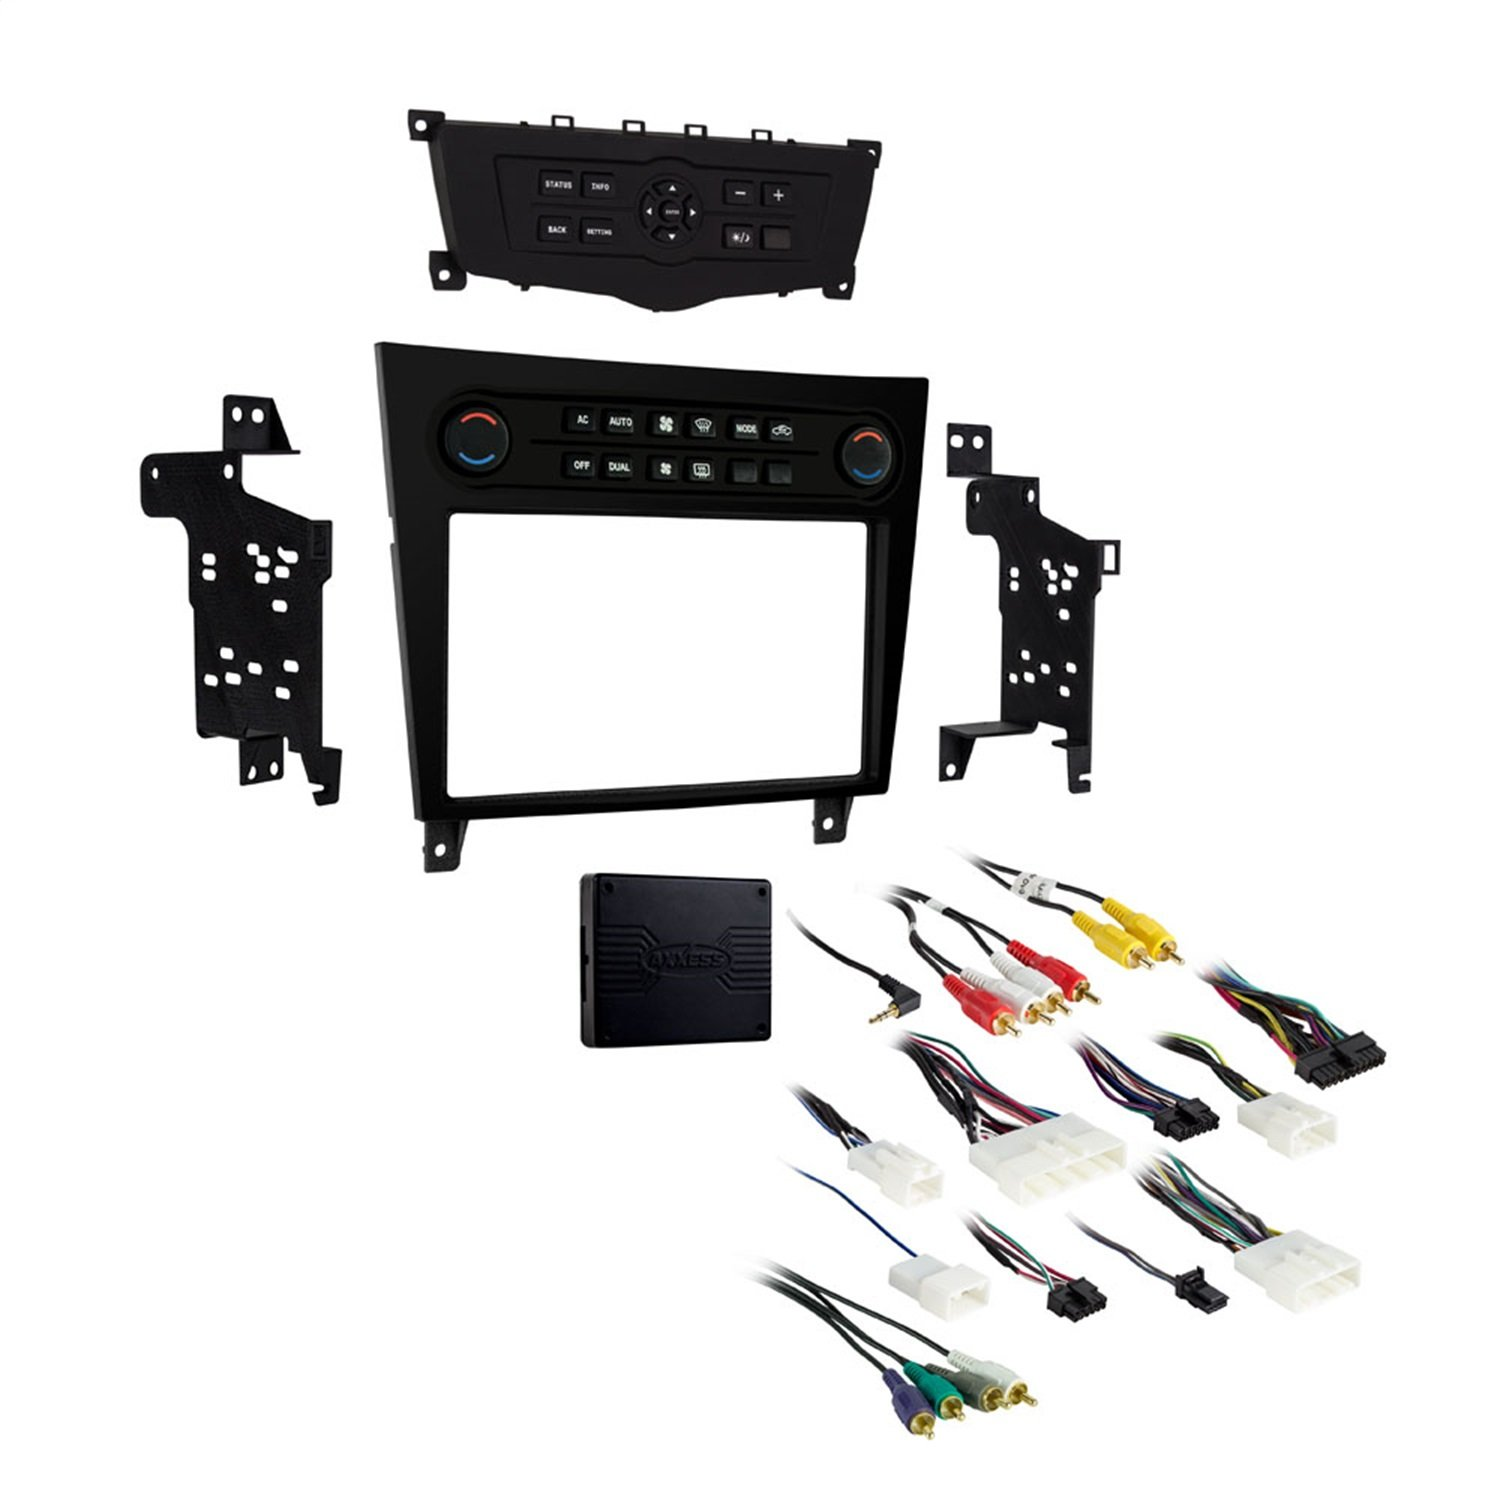 Metra 99 7625b Single Double Din Dash Kit For 2008 Infiniti G35 Audio Wiring Diagram 2013 G37 Black Car Electronics